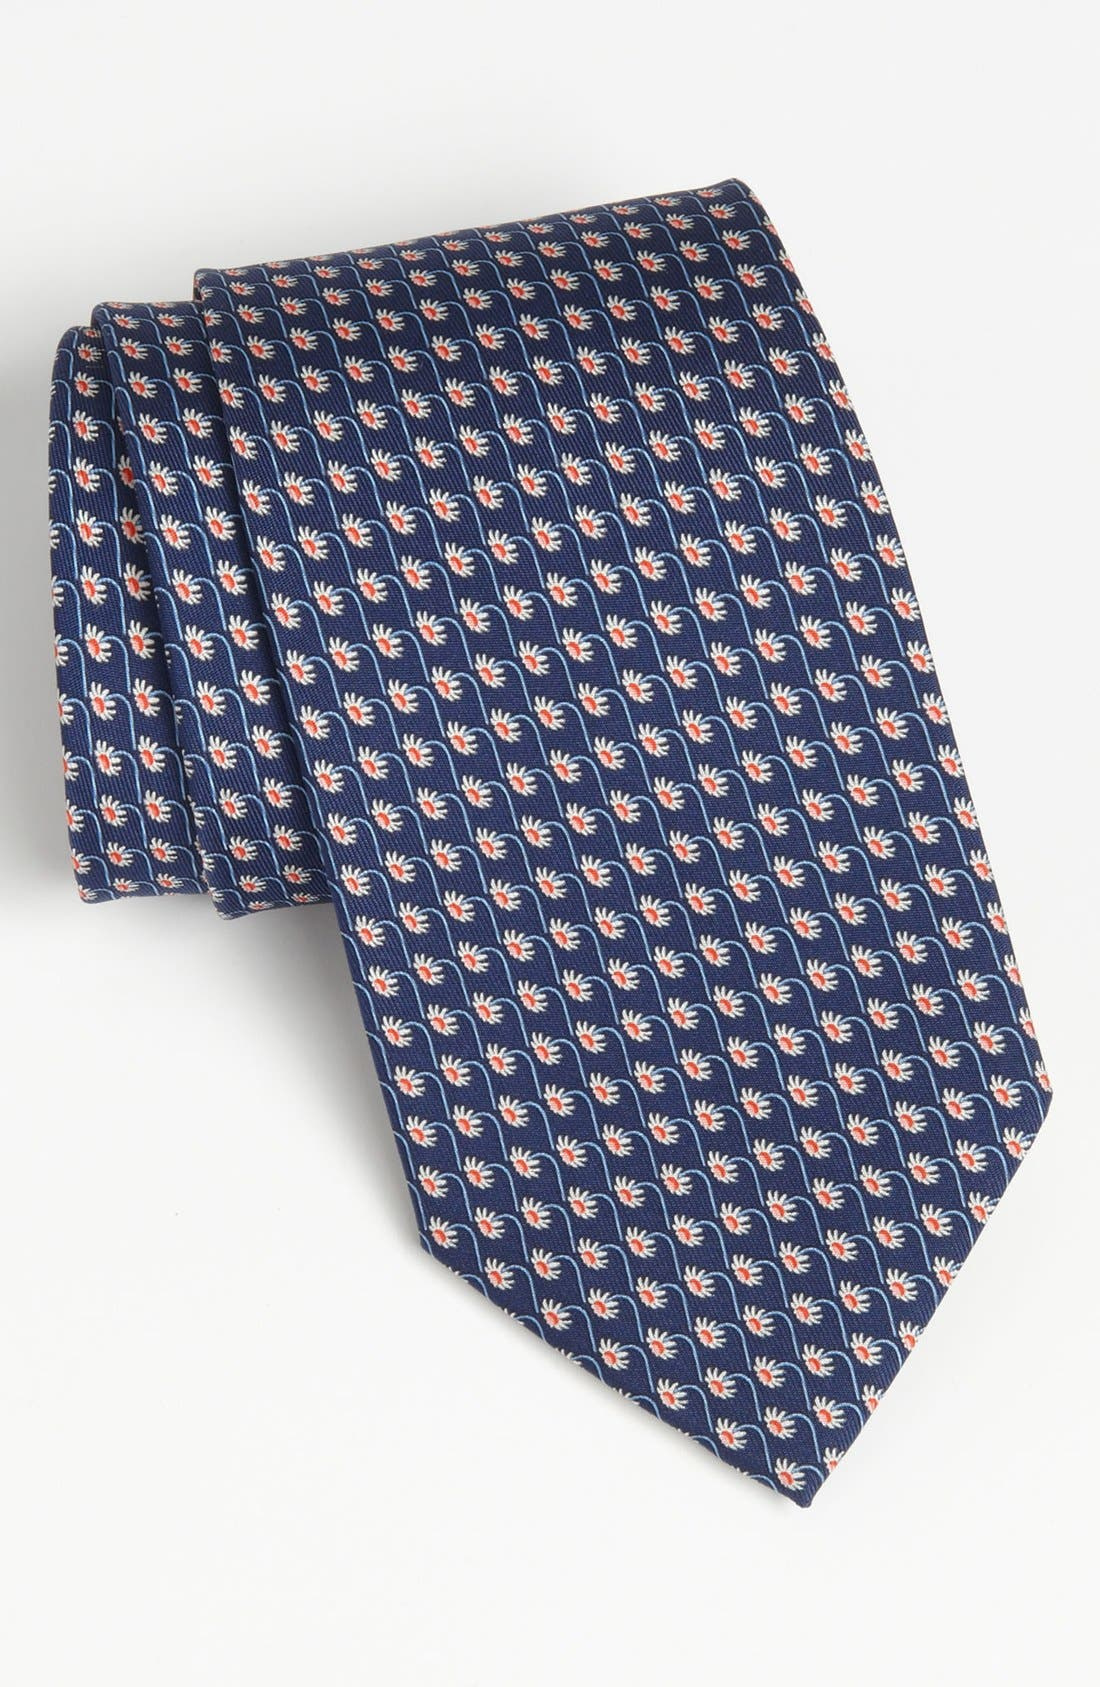 Alternate Image 1 Selected - Salvatore Ferragamo Floral Print Silk Tie